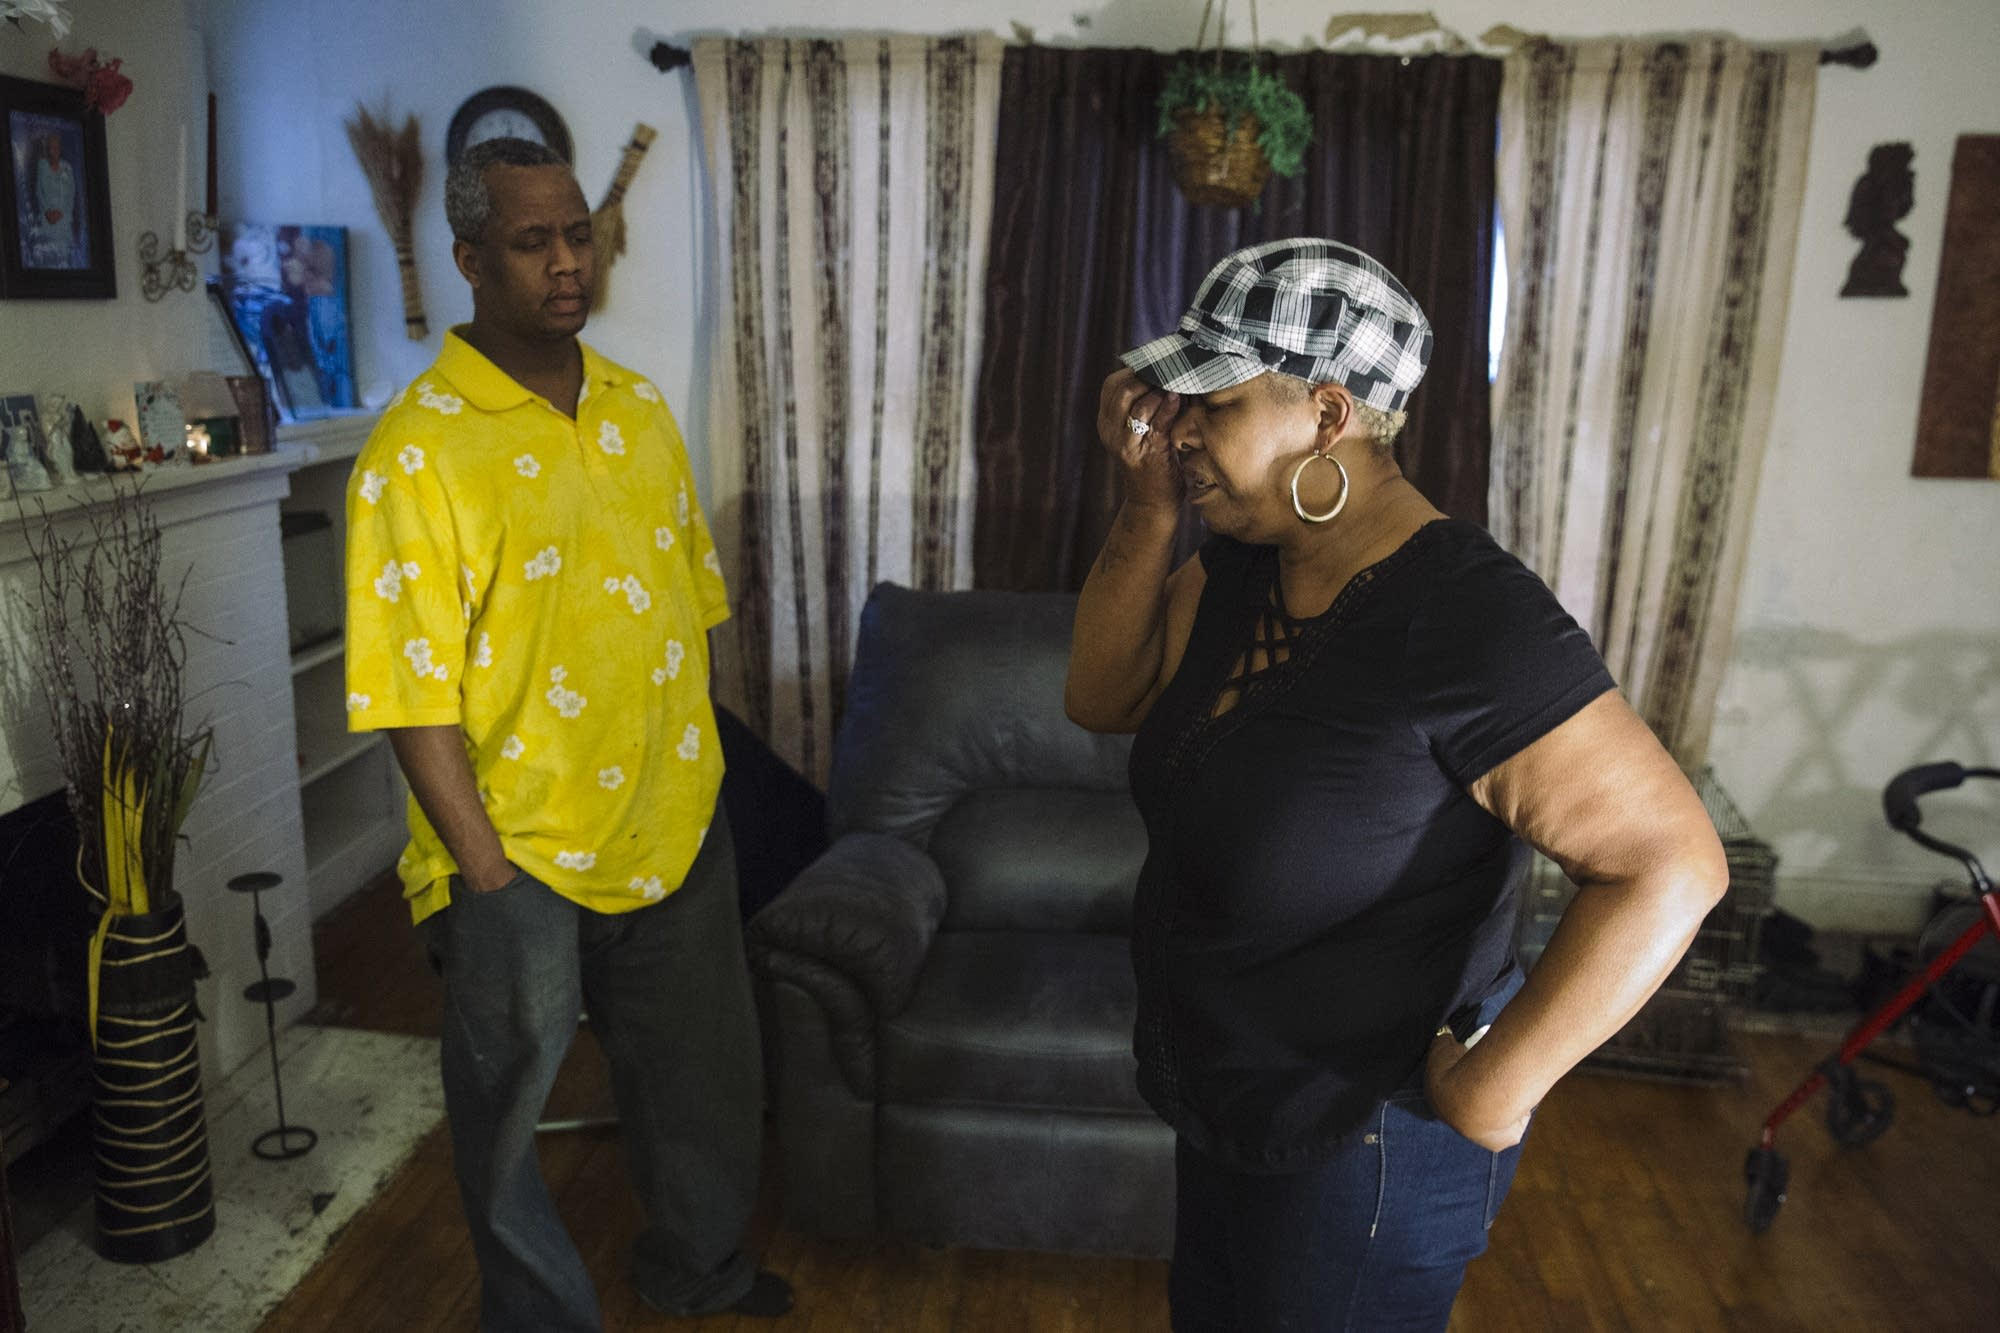 Patricia and Maurice Gant discuss their living situation.